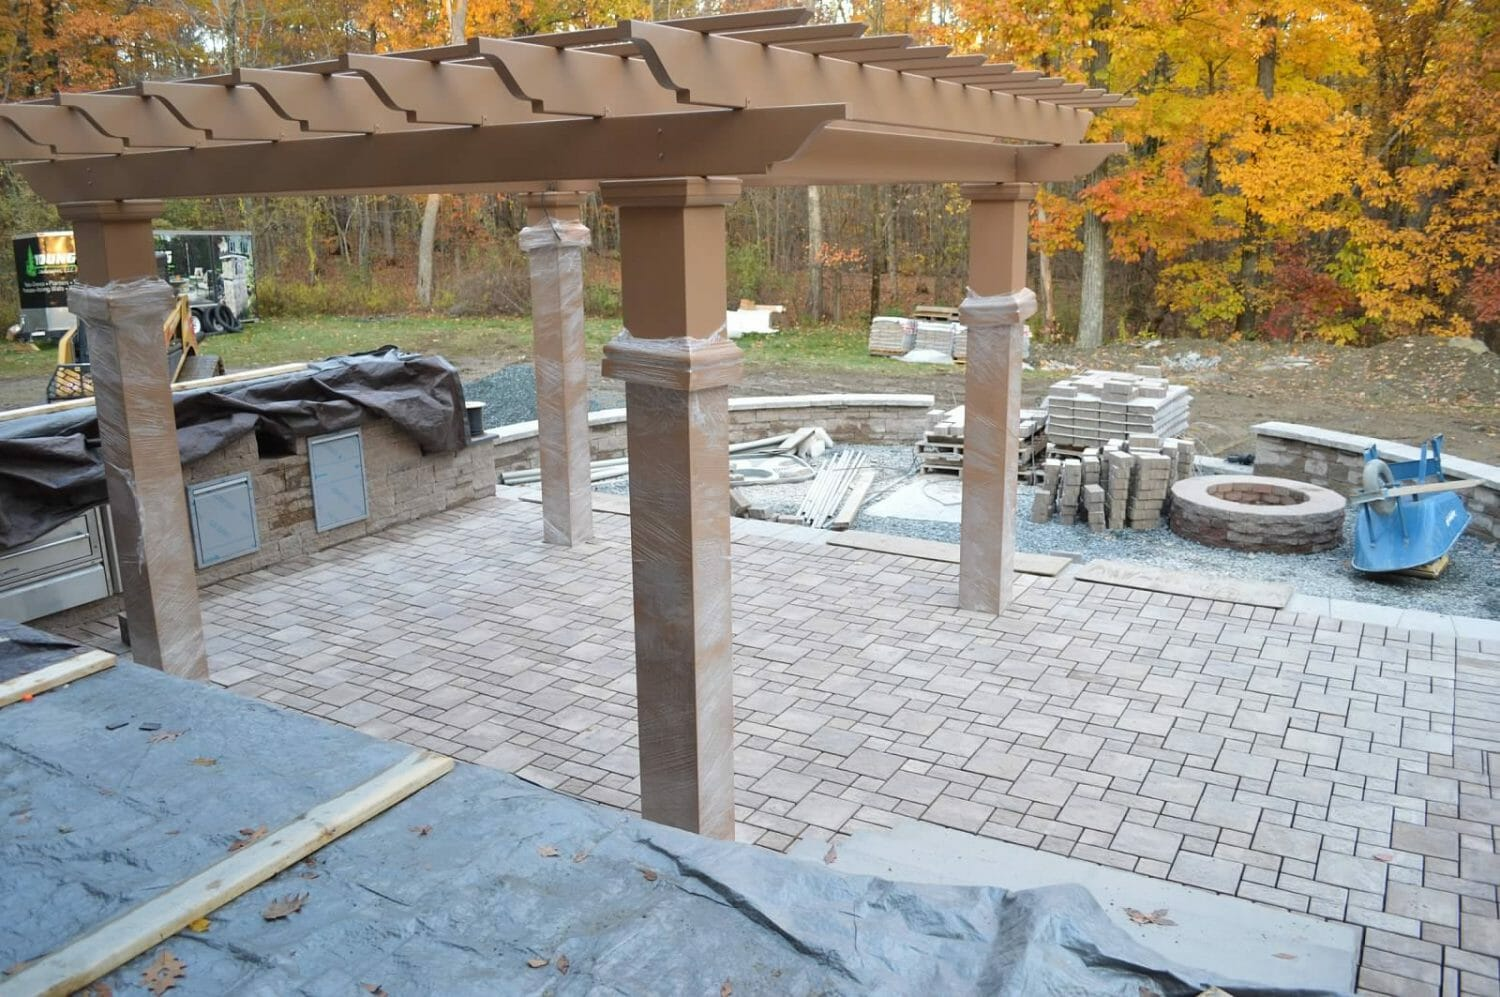 Wynantskill NY backyard outdoor kitchen landscape design 1500x997 - Landscape Plan Installation and Project Management